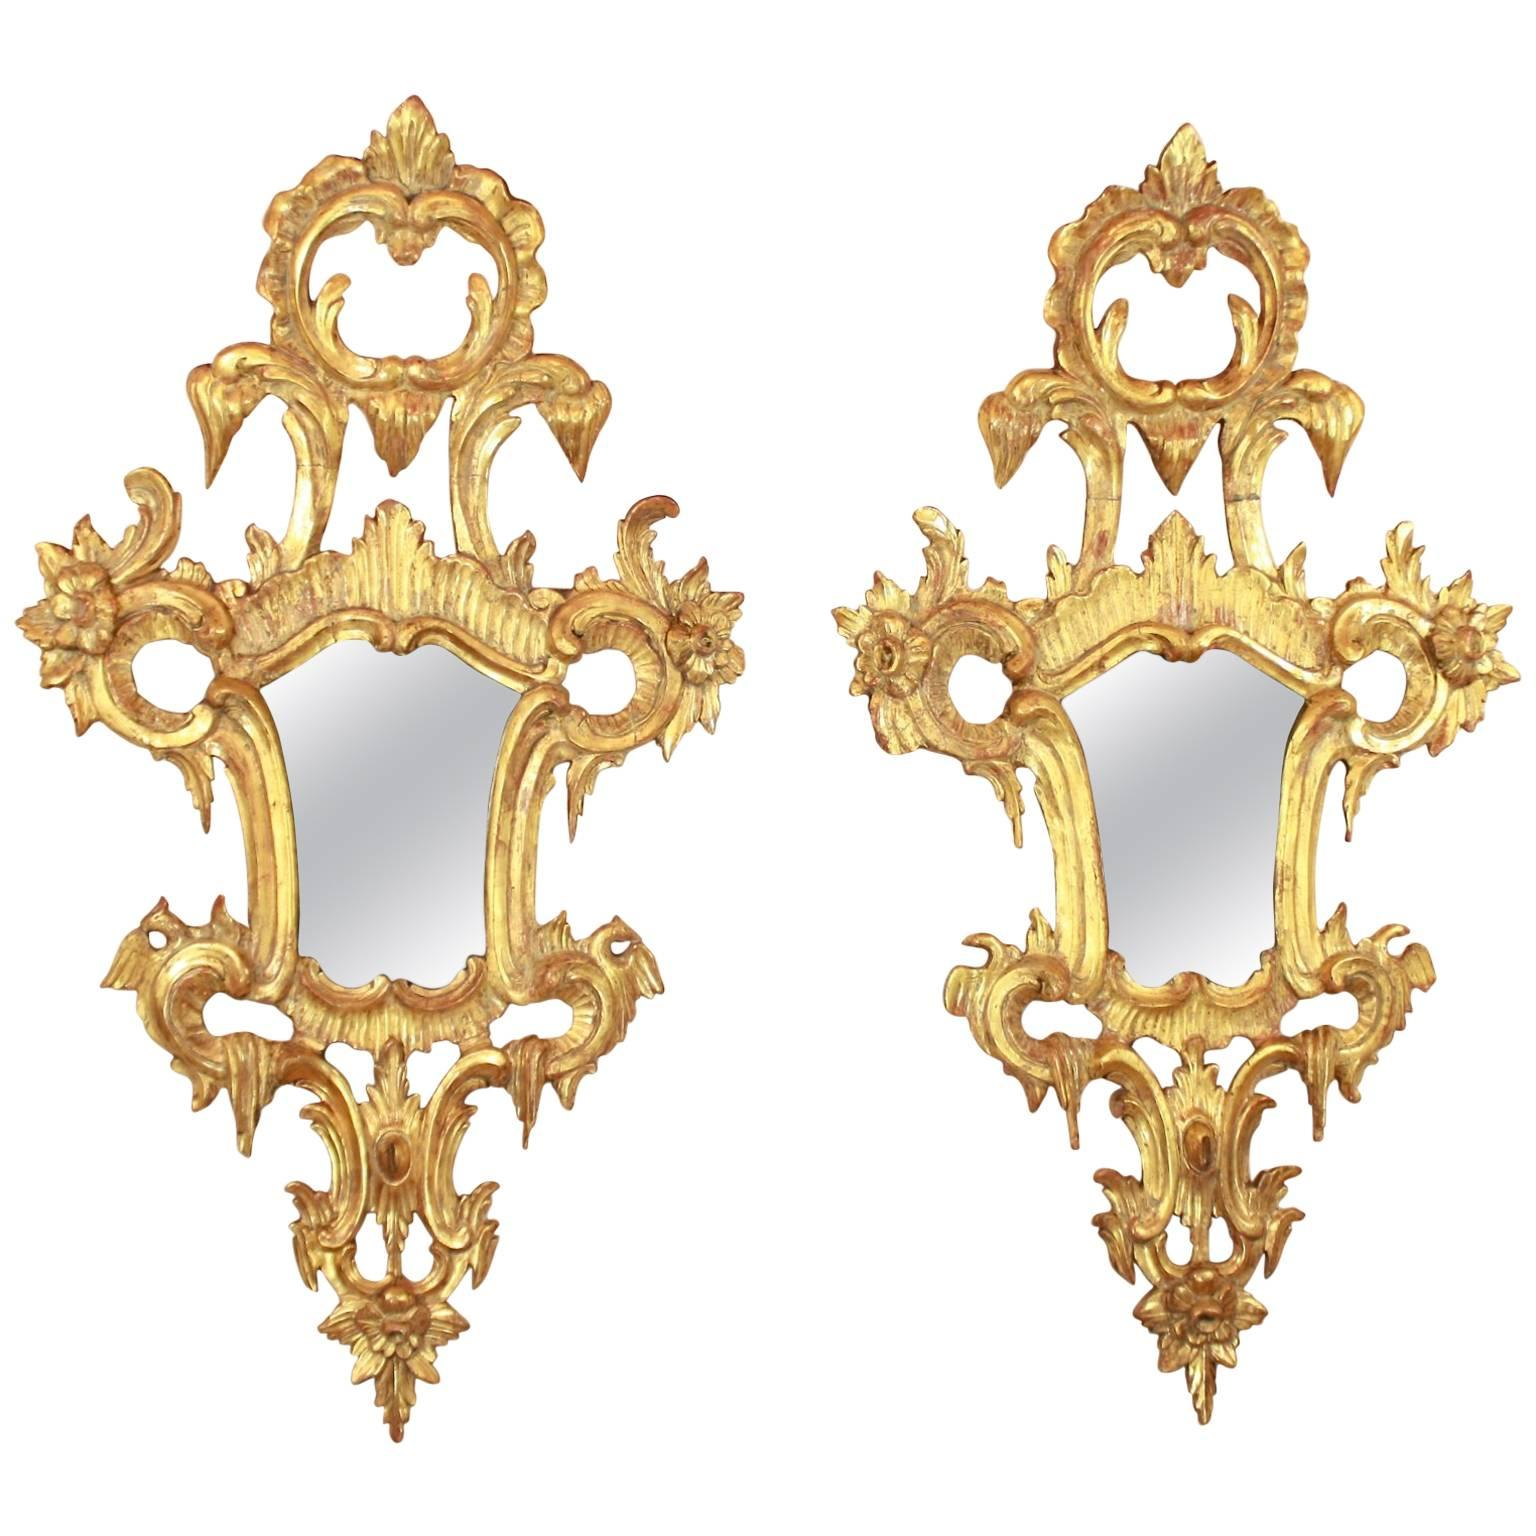 Pair of 18th Century North Italian Rococo Giltwood Mirrors